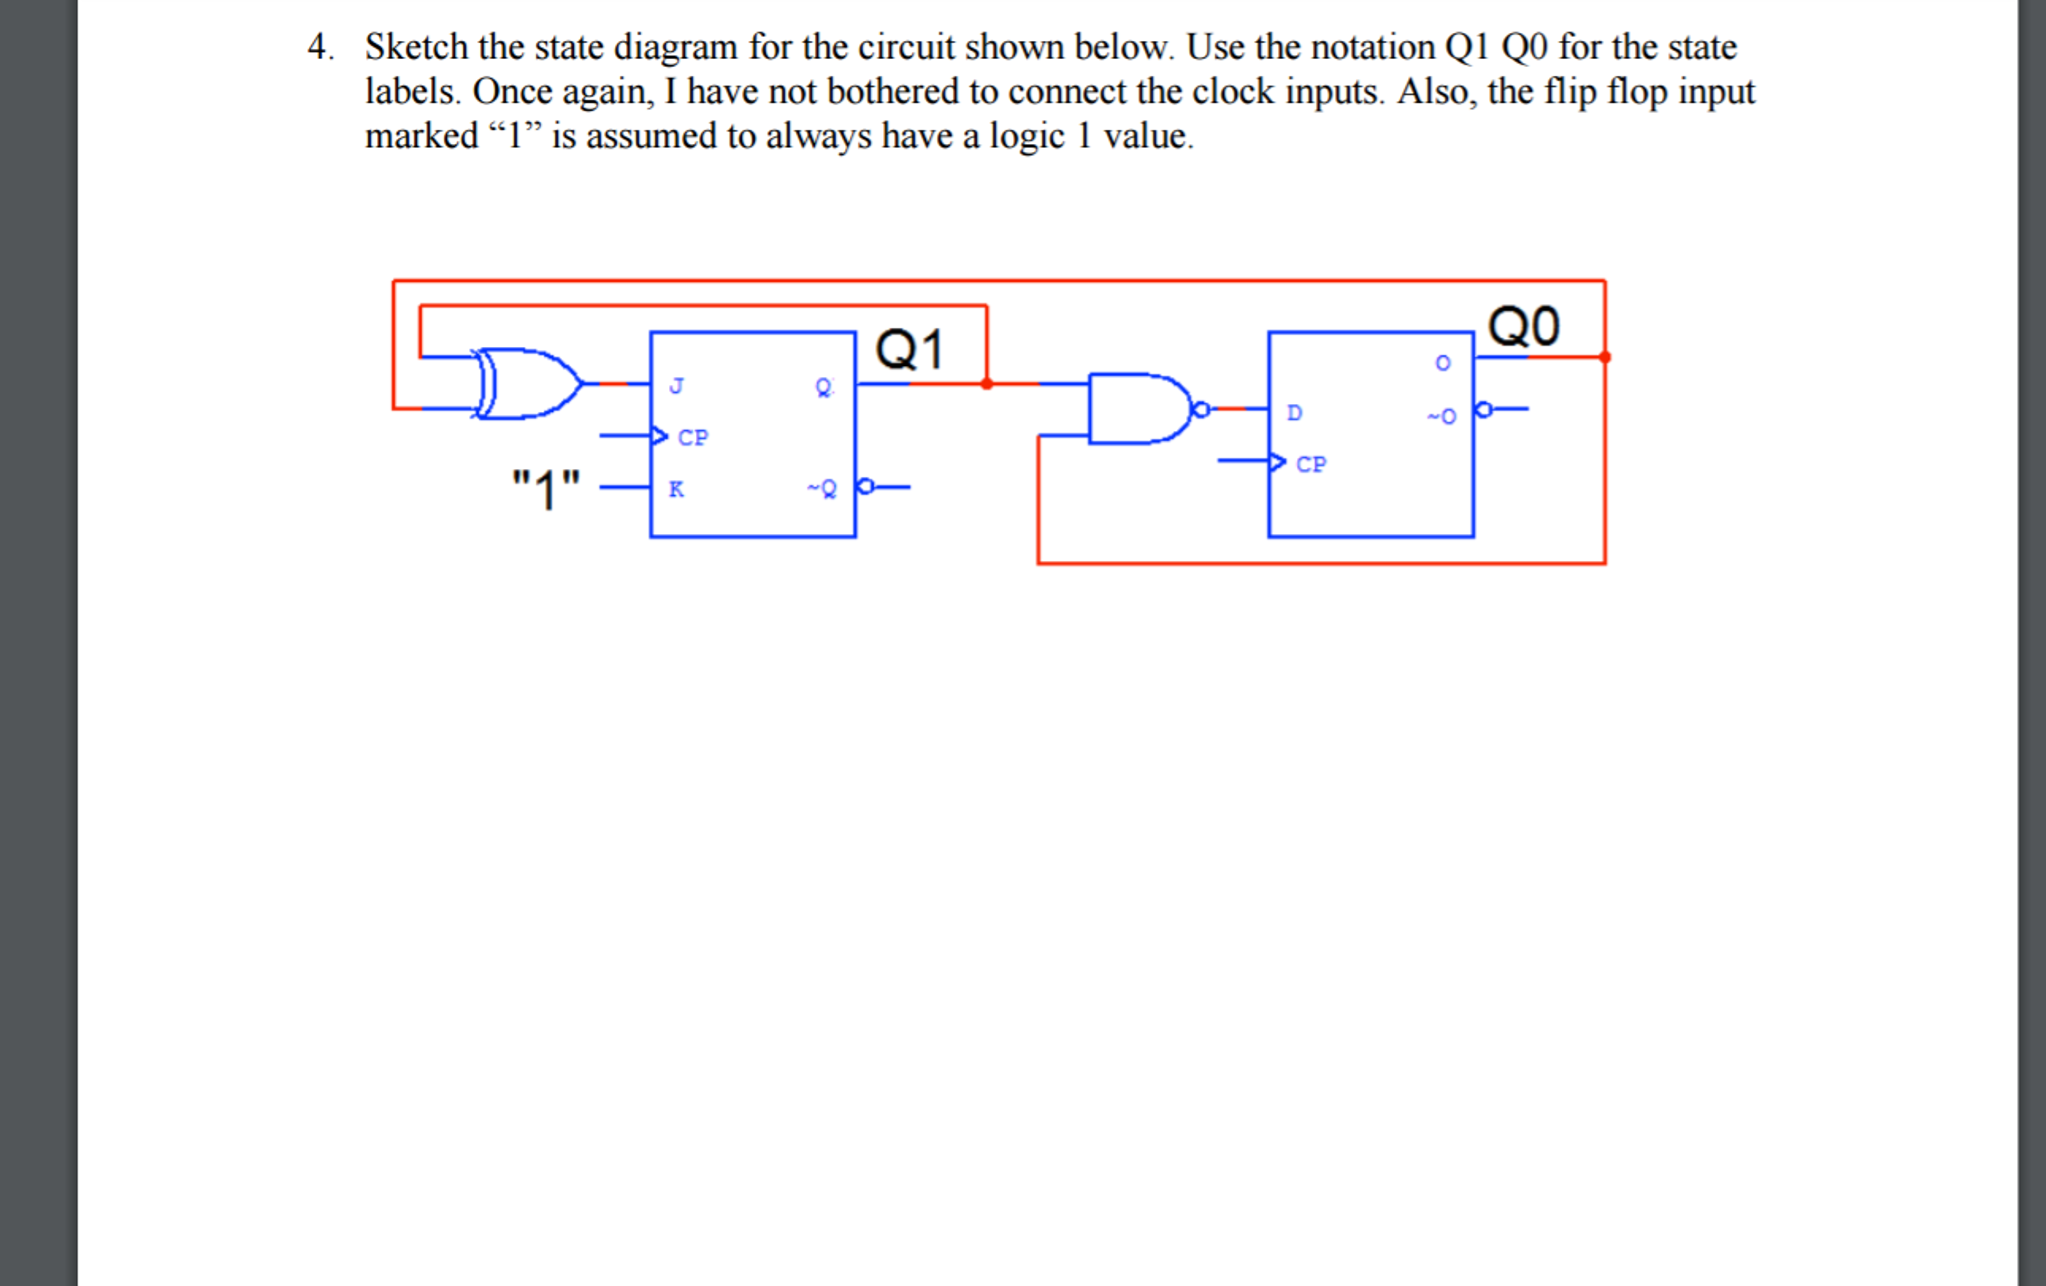 Question: Sketch the state diagram for the circuit shown below. Use the  notation Q1 Q0 for the state labels.